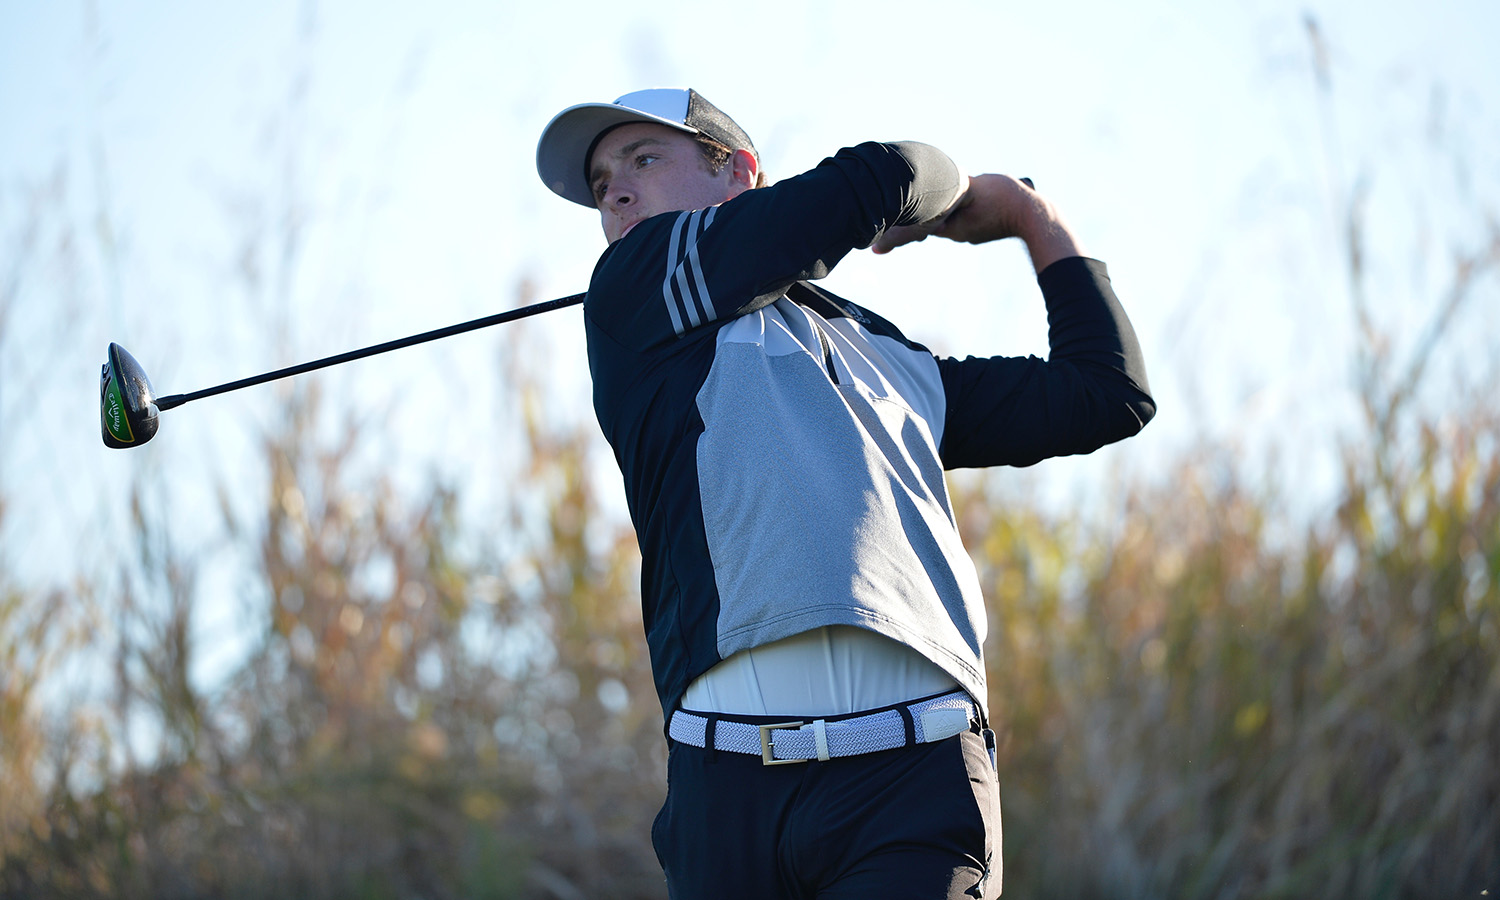 DAVIDSON'S 67 LEADS MEN'S GOLF IN FIRST ROUND AT KA'ANAPALI